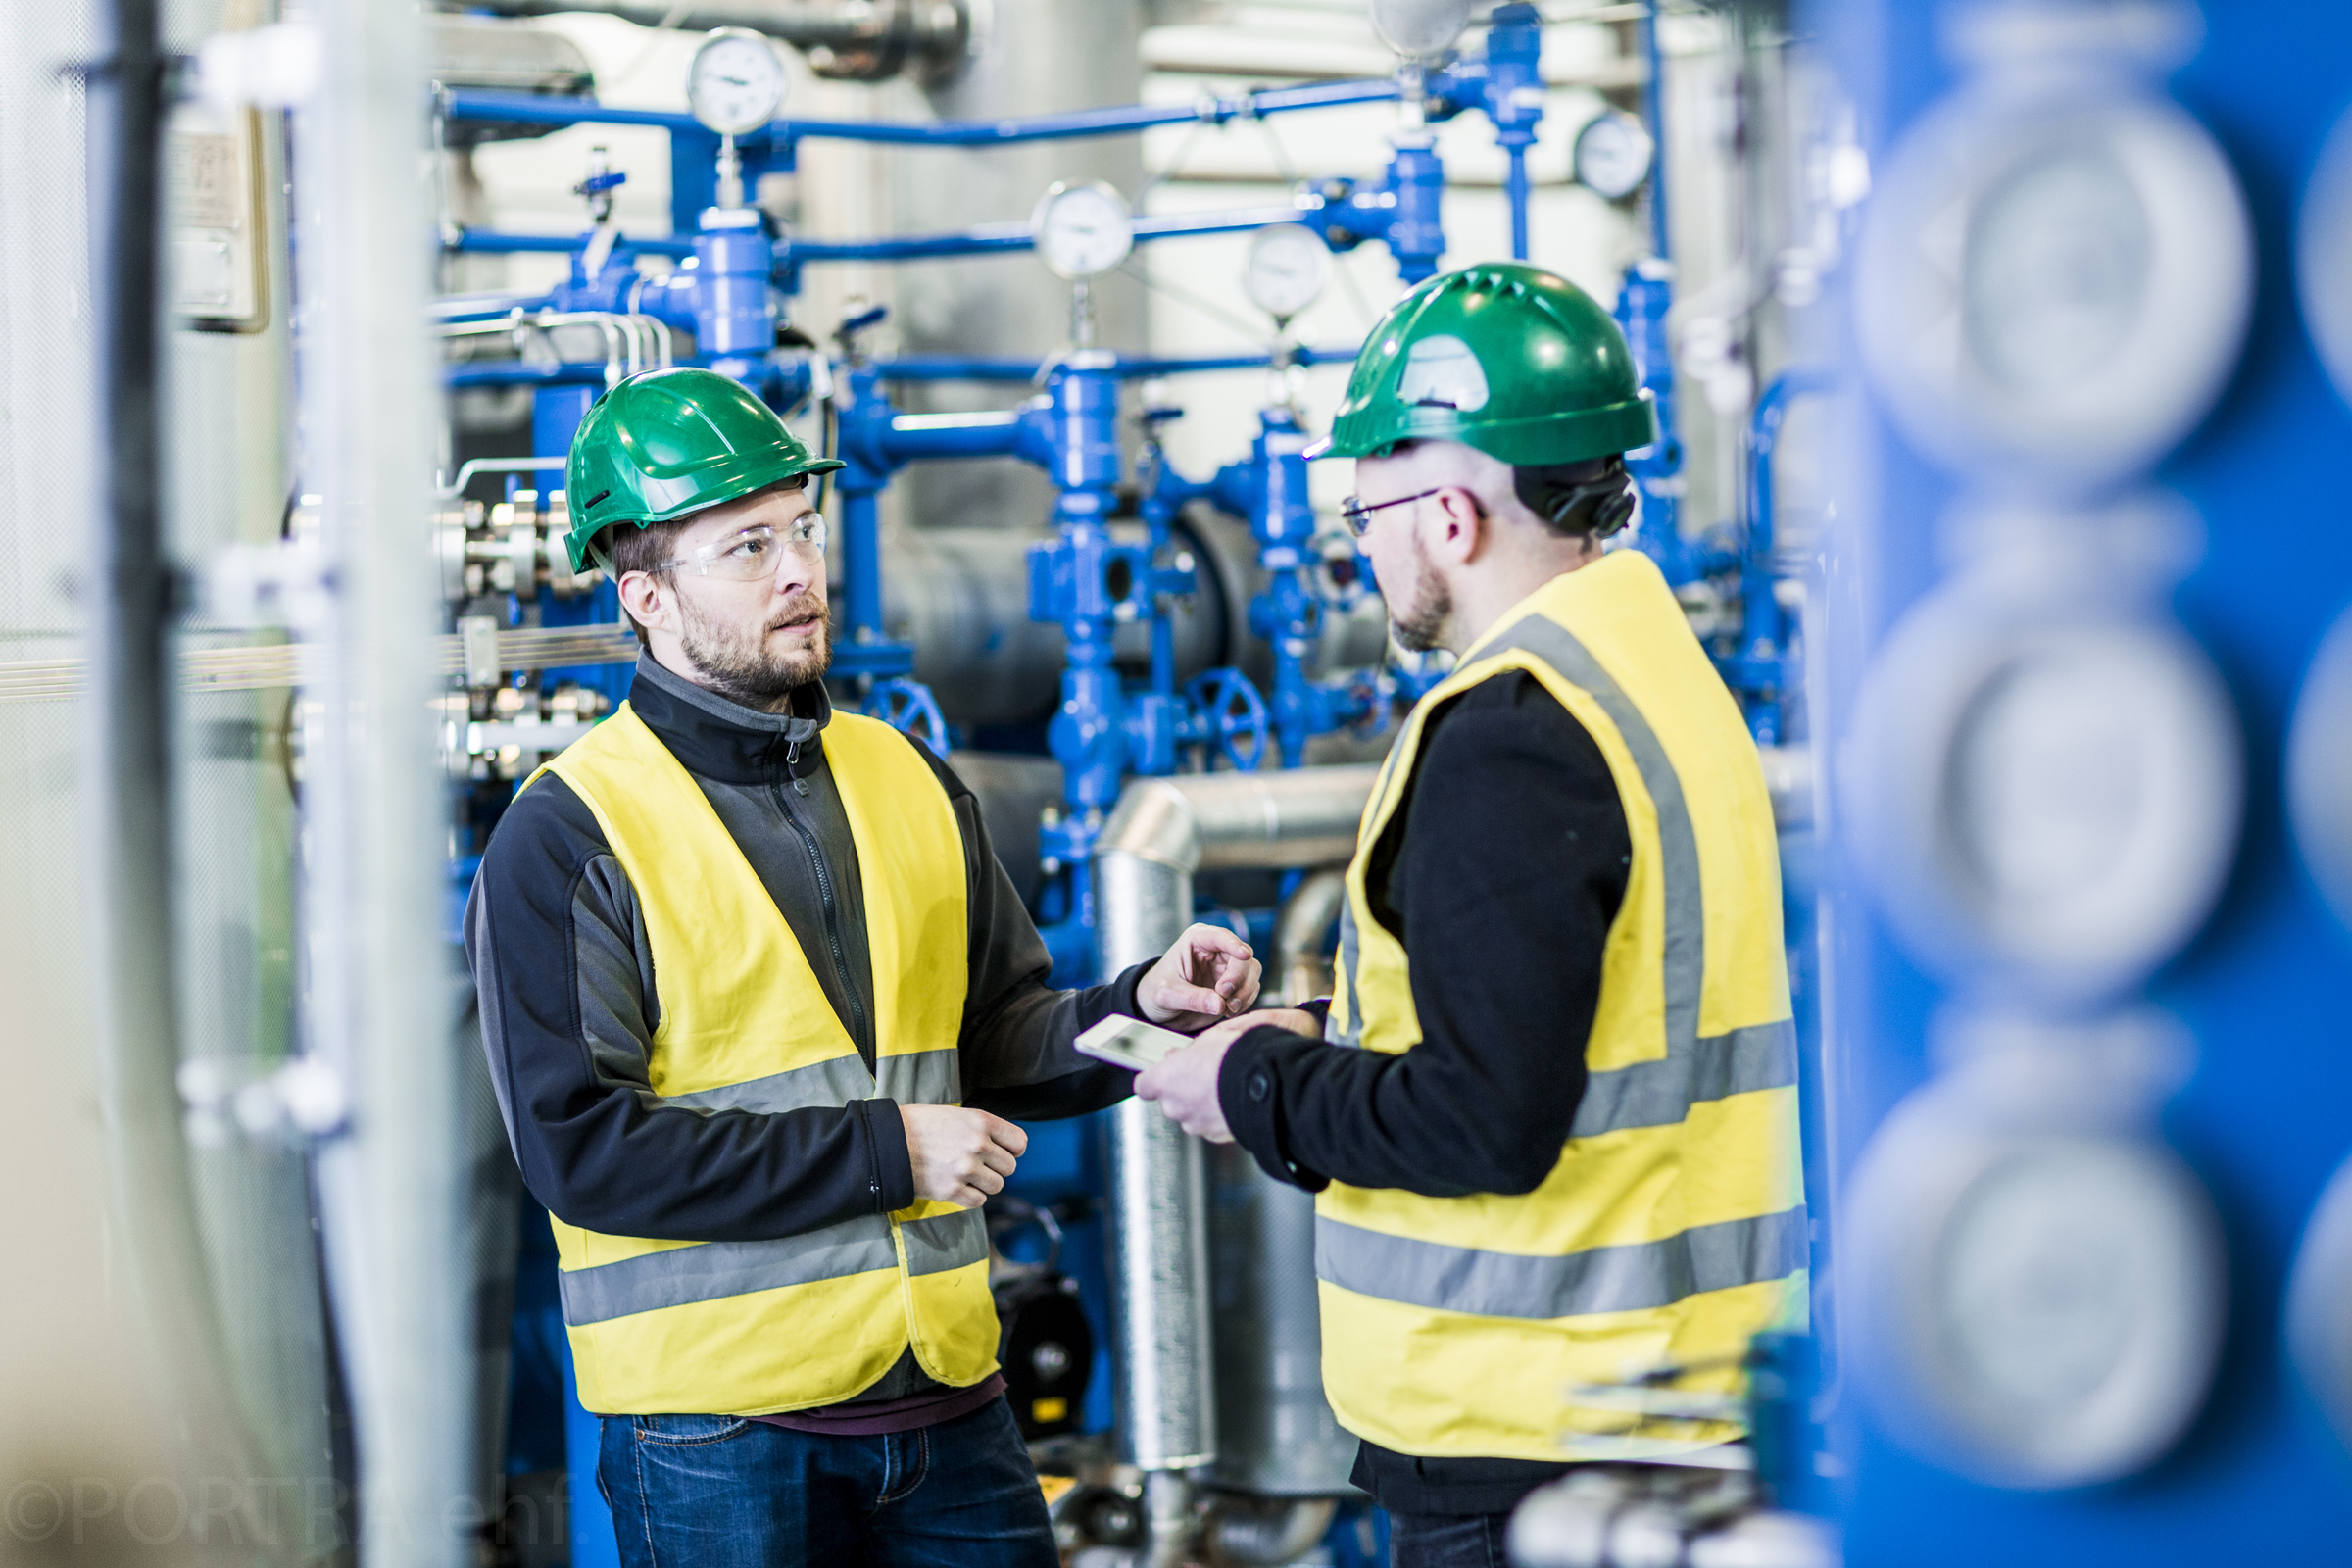 Careers - Carbon Recycling International is driven by a strong team of talented professionals who every day commit their skills, motivation and expertise to facilitating a future where carbon emissions are viewed as a resource for production of valuable commodities.